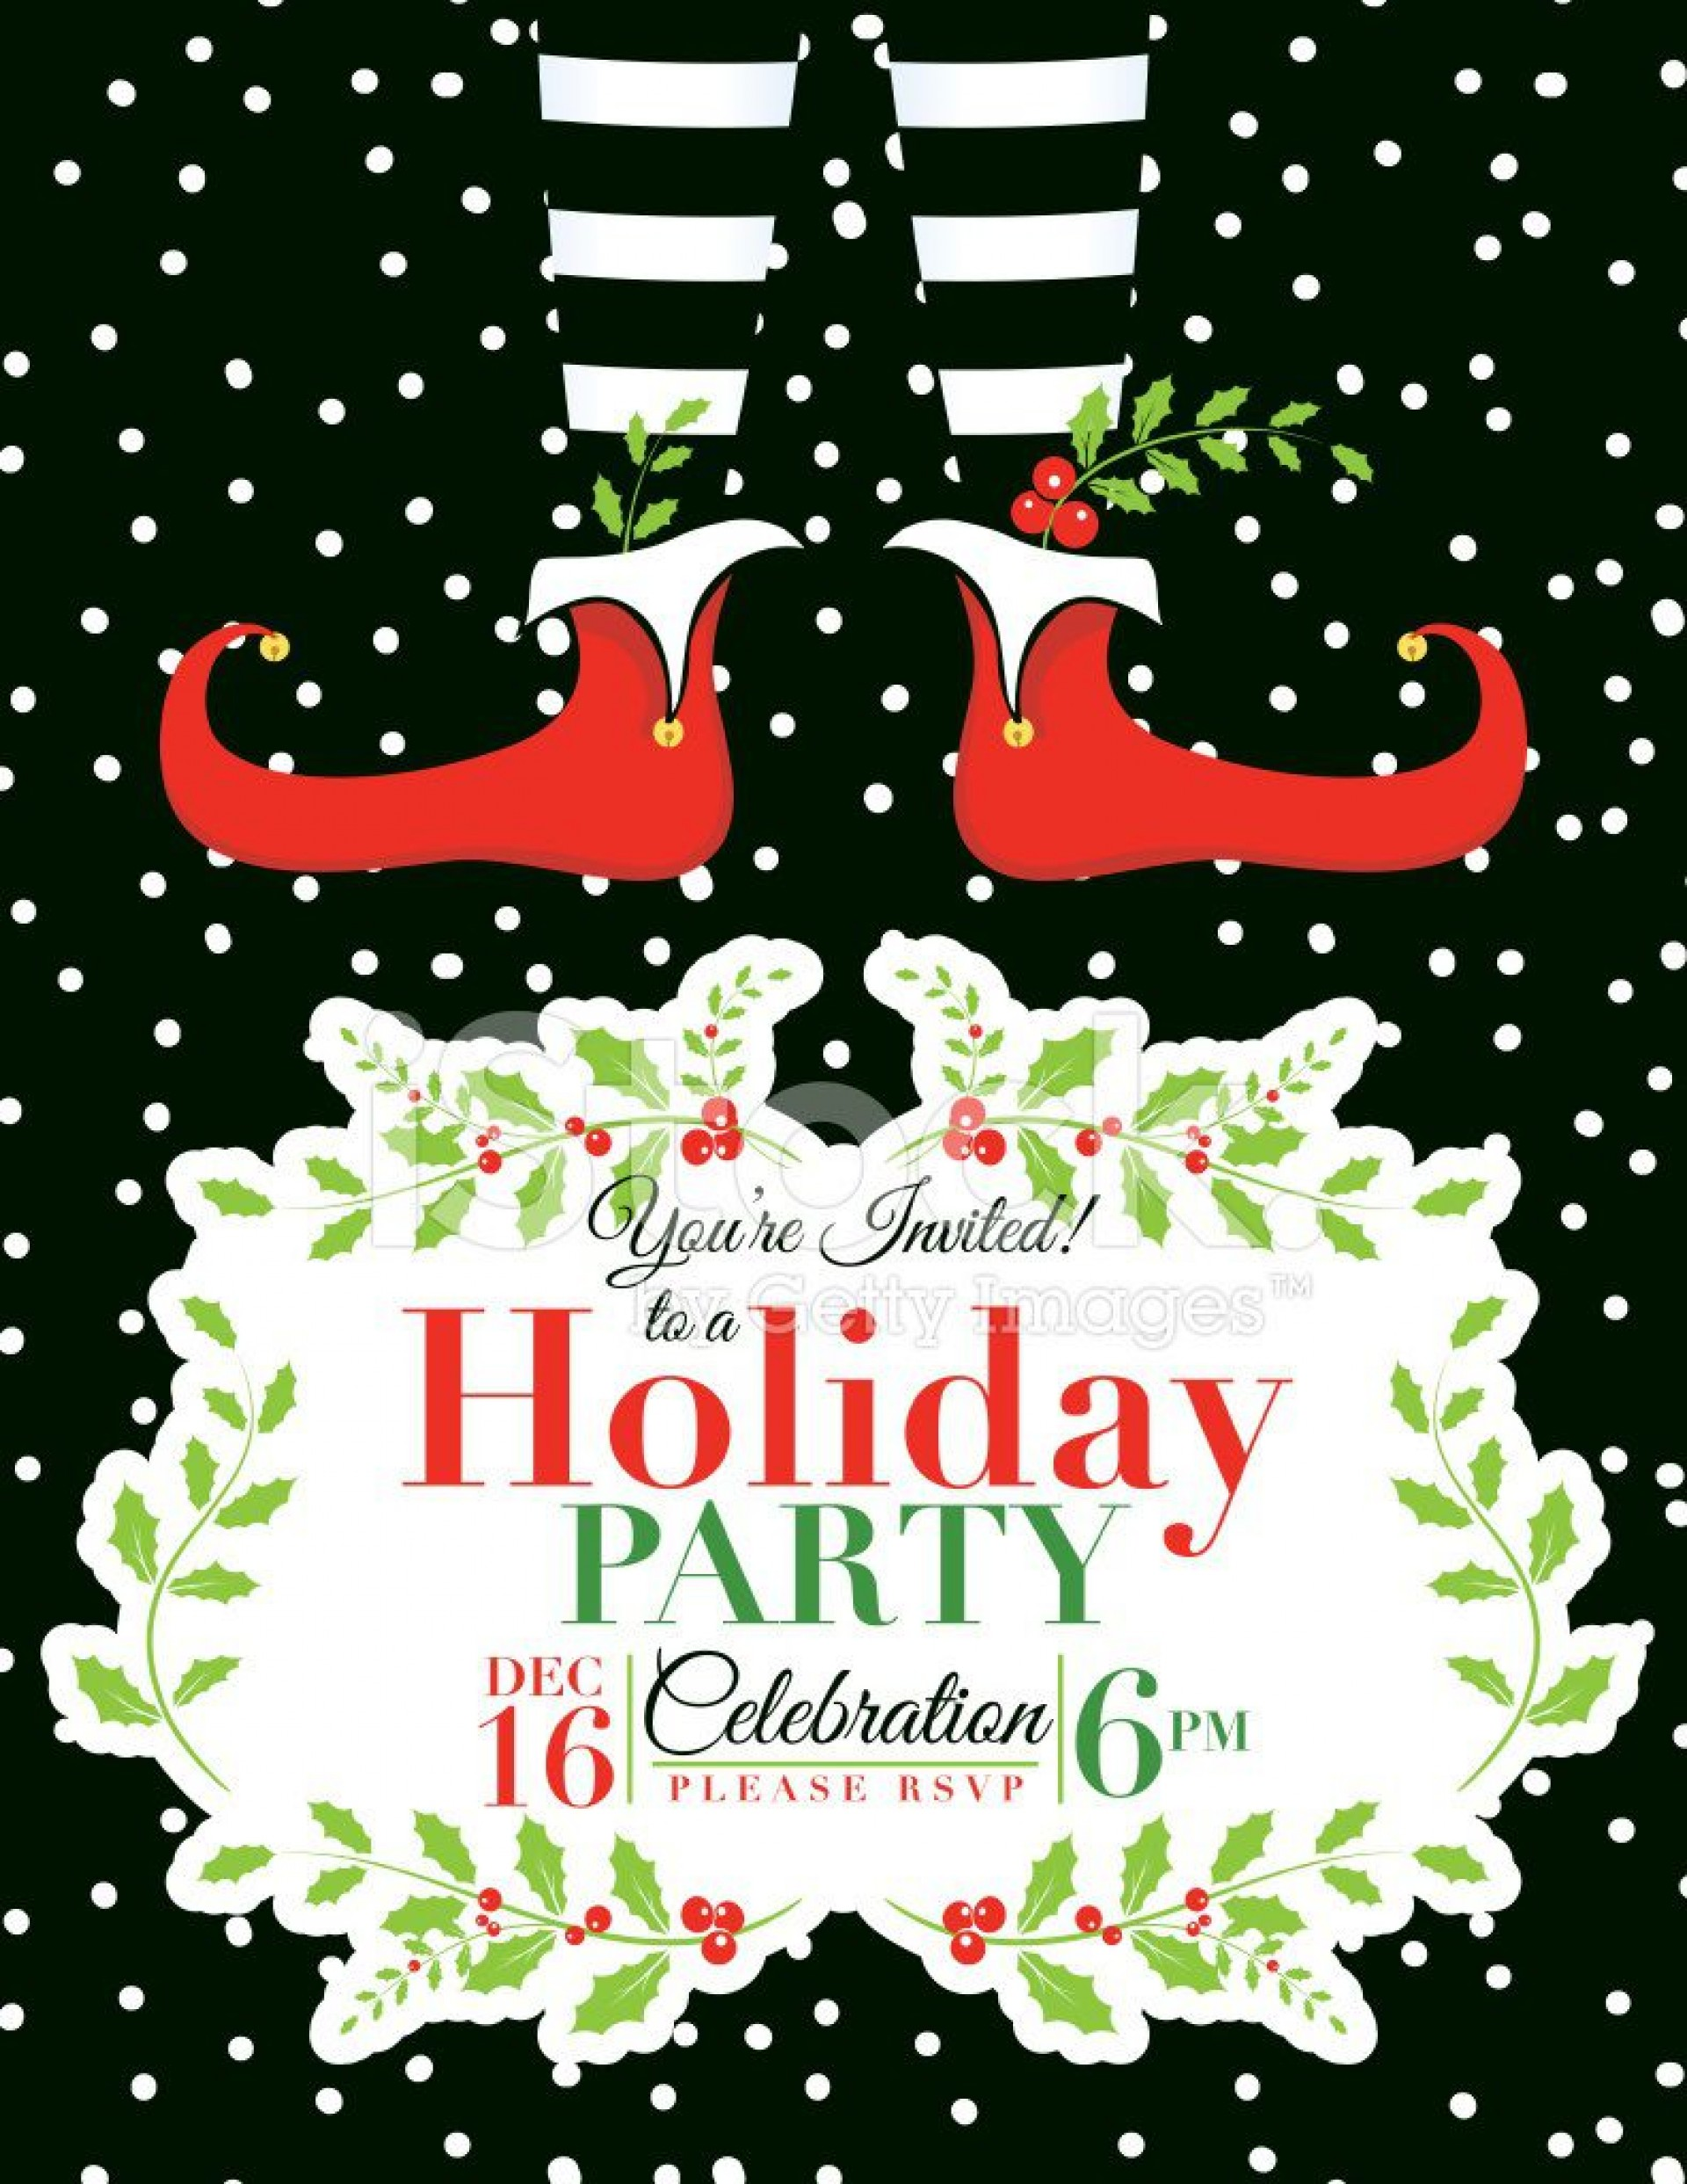 009 Surprising Free Holiday Party Invitation Template Concept  Templates Printable Downloadable Christma Online1920